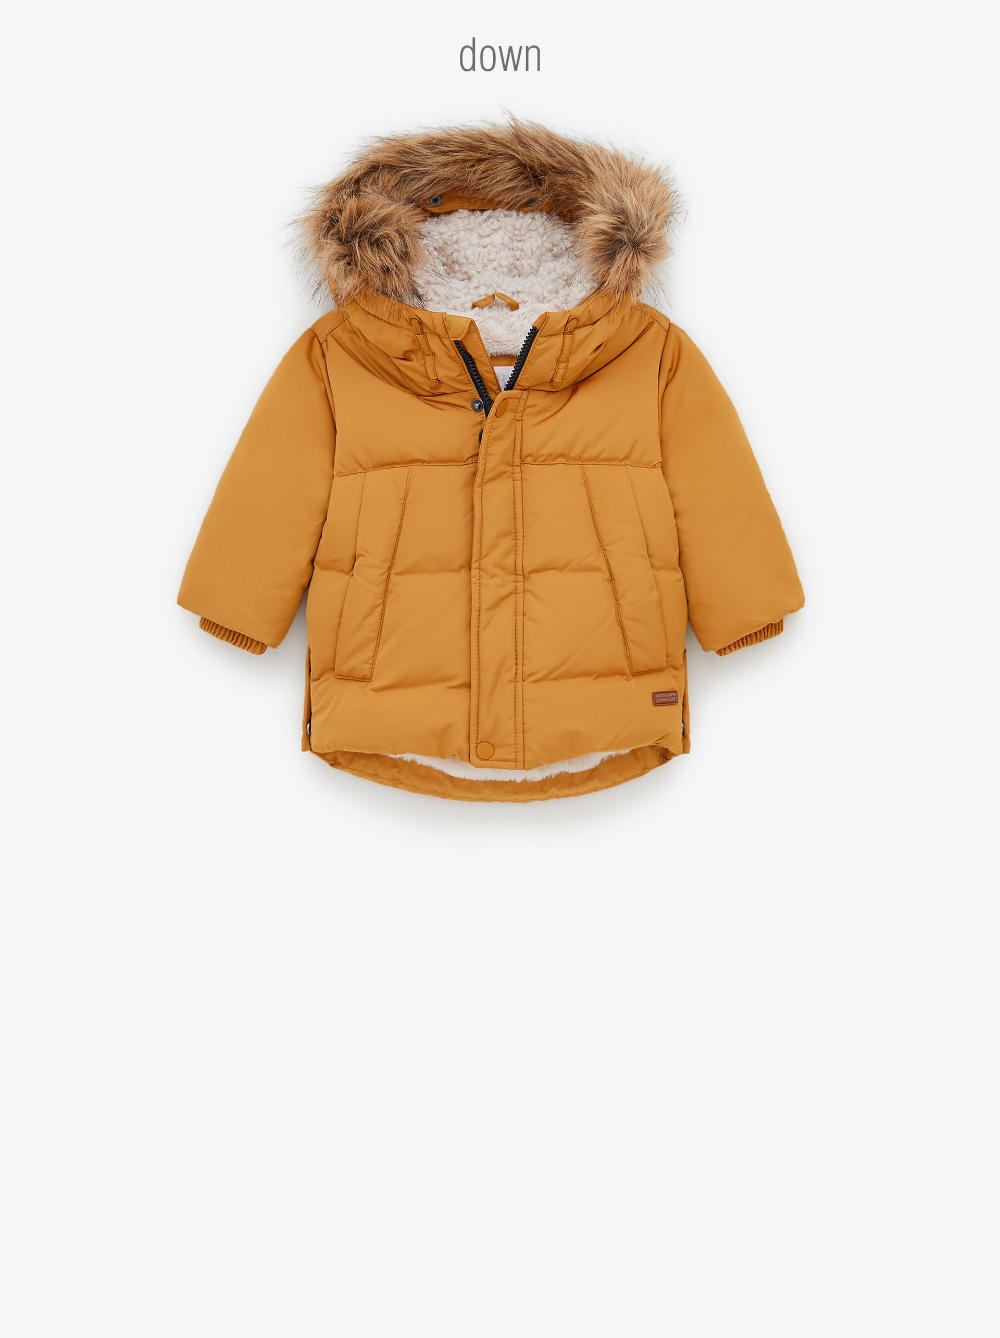 Baby Boys Fashion New Collection Online Zara United States Down Puffer Coat Puffer Coat Coat [ 1338 x 1000 Pixel ]